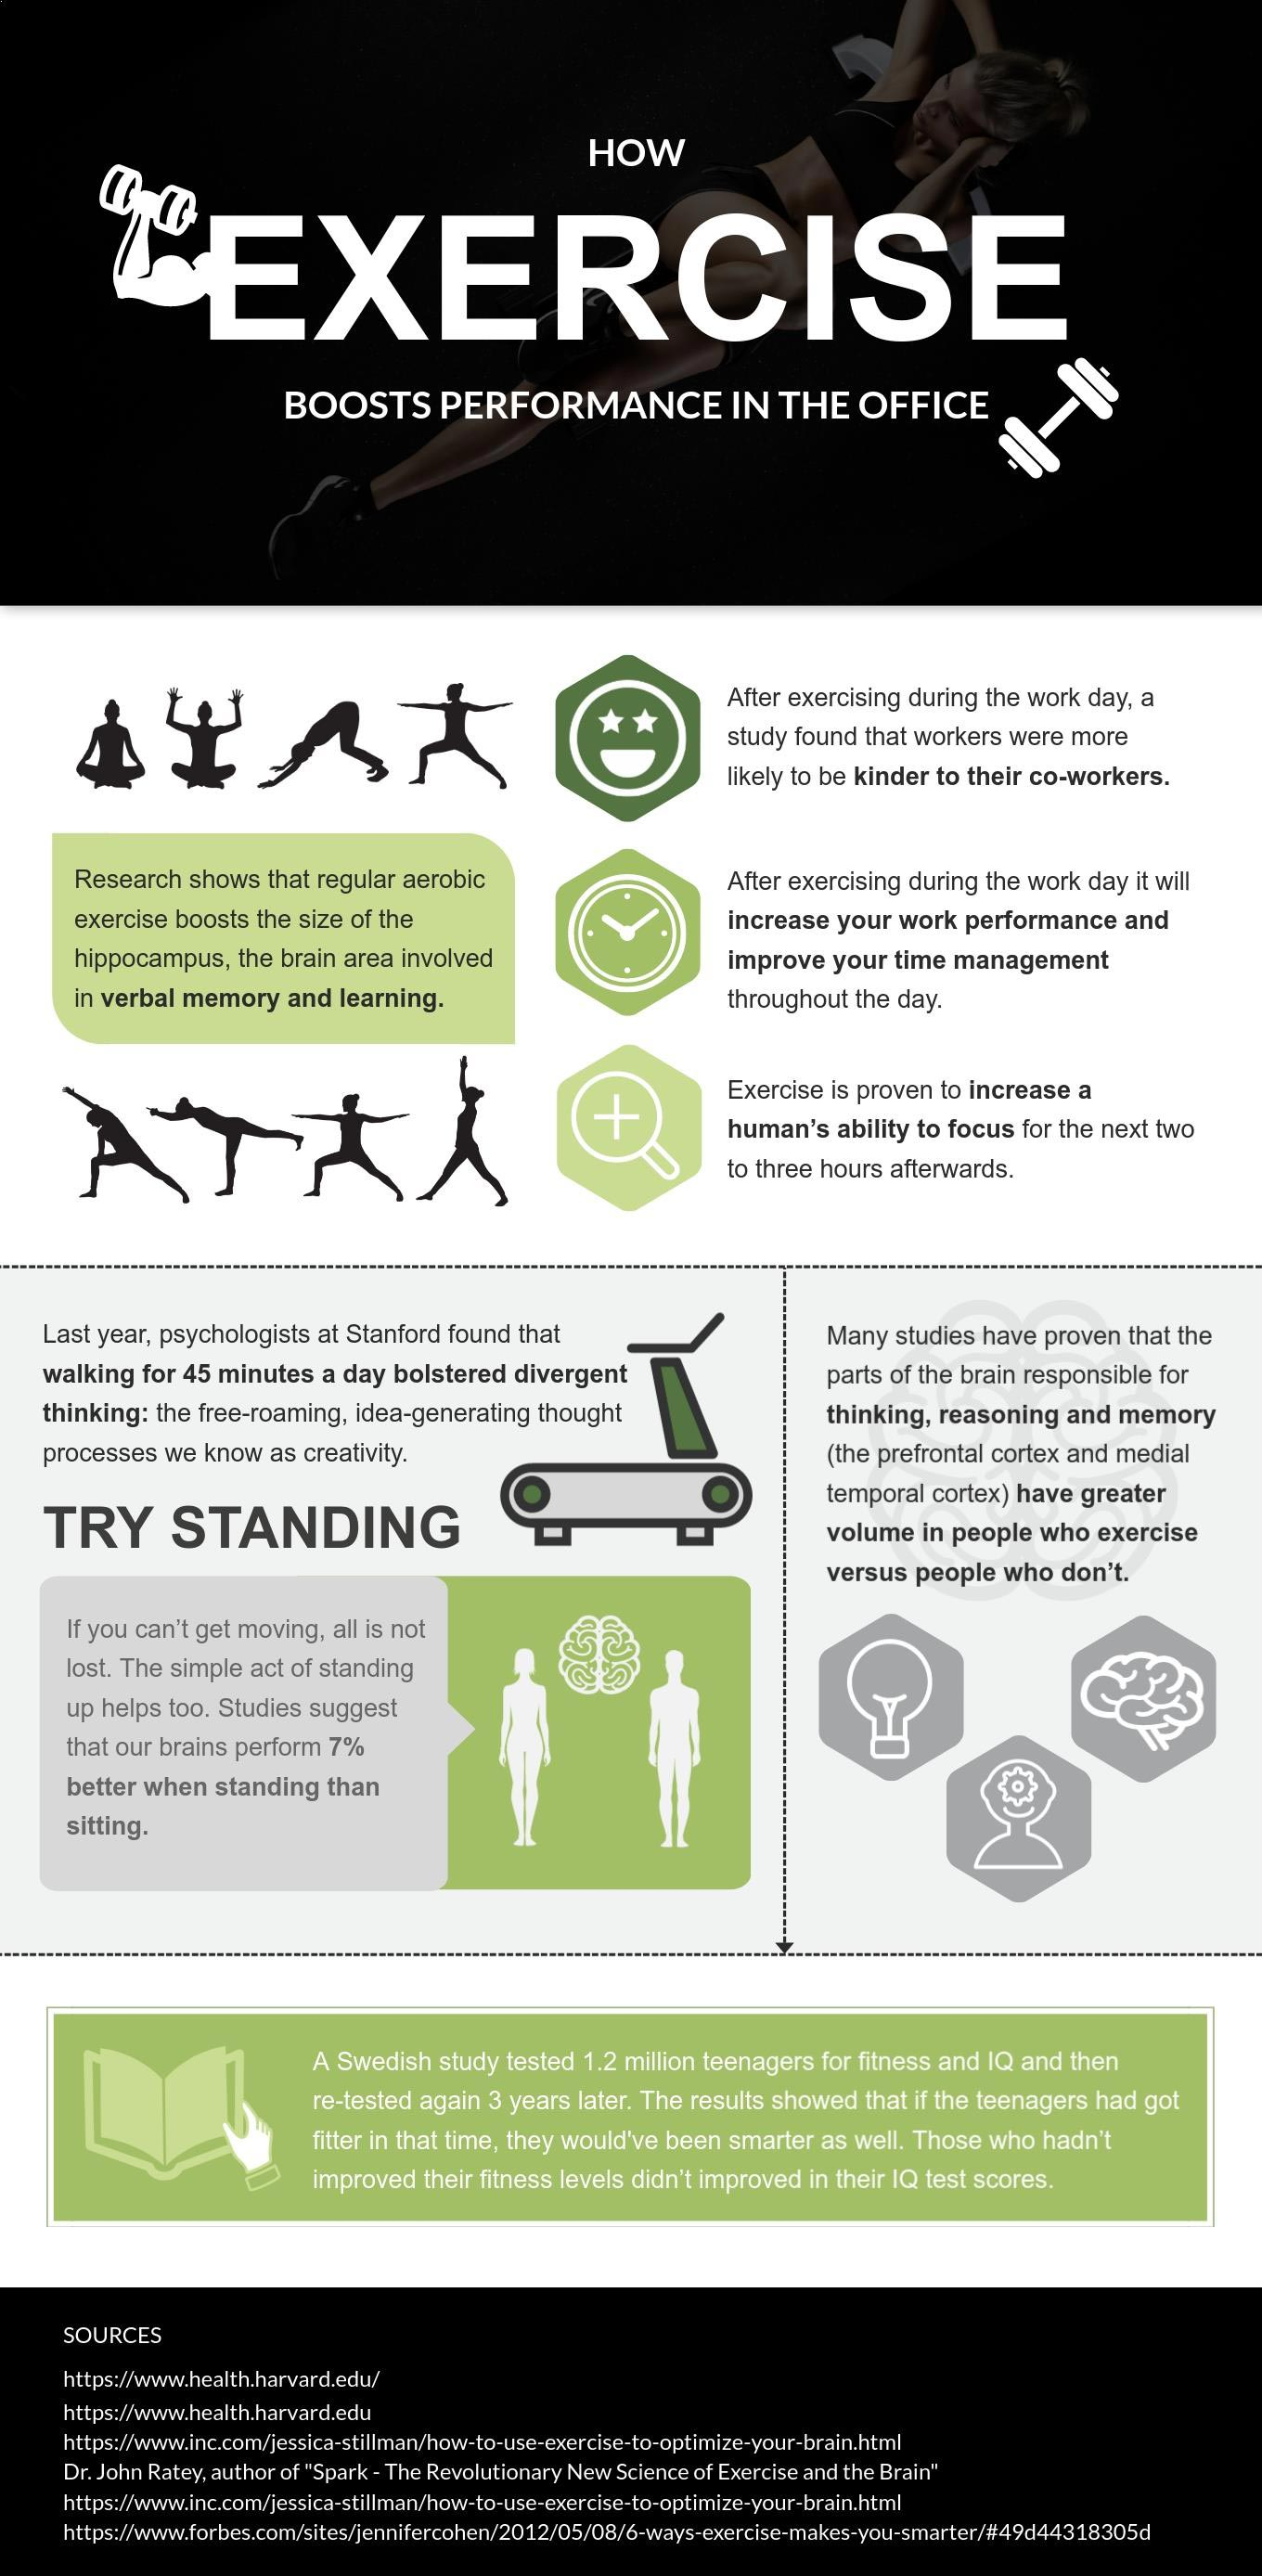 How-exercise-boosts-performance-in-the-office-infographic